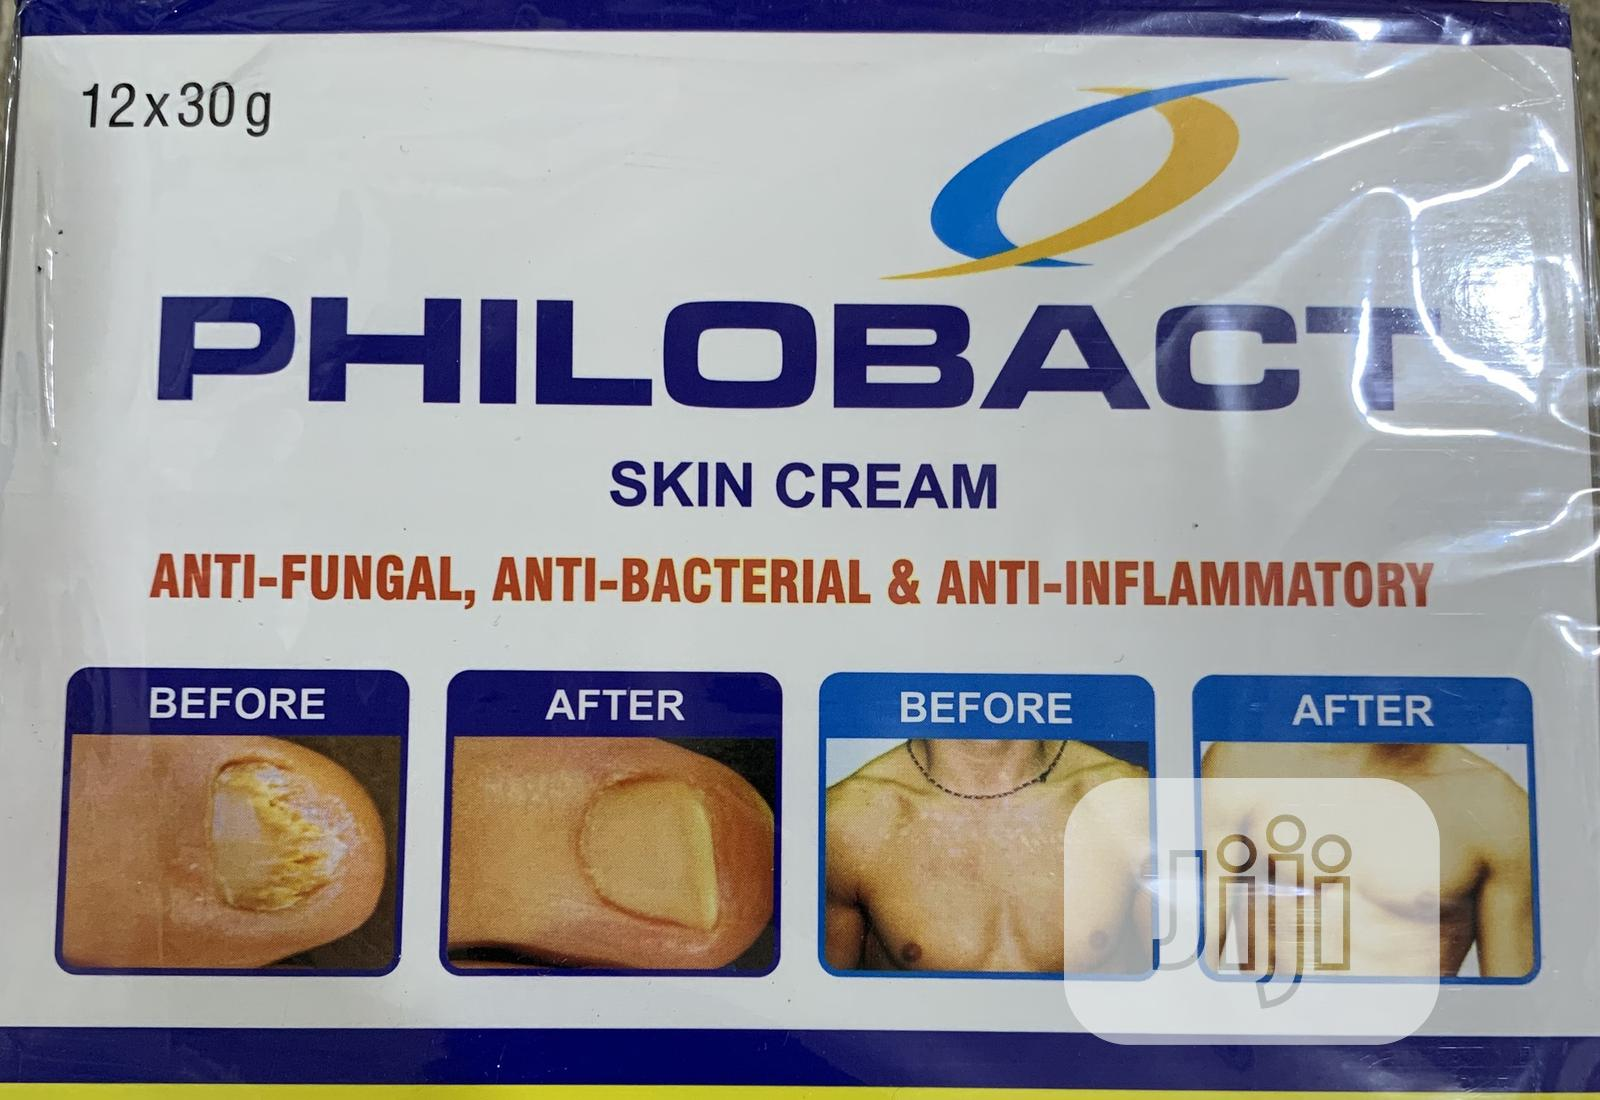 Philobact Skin Cream